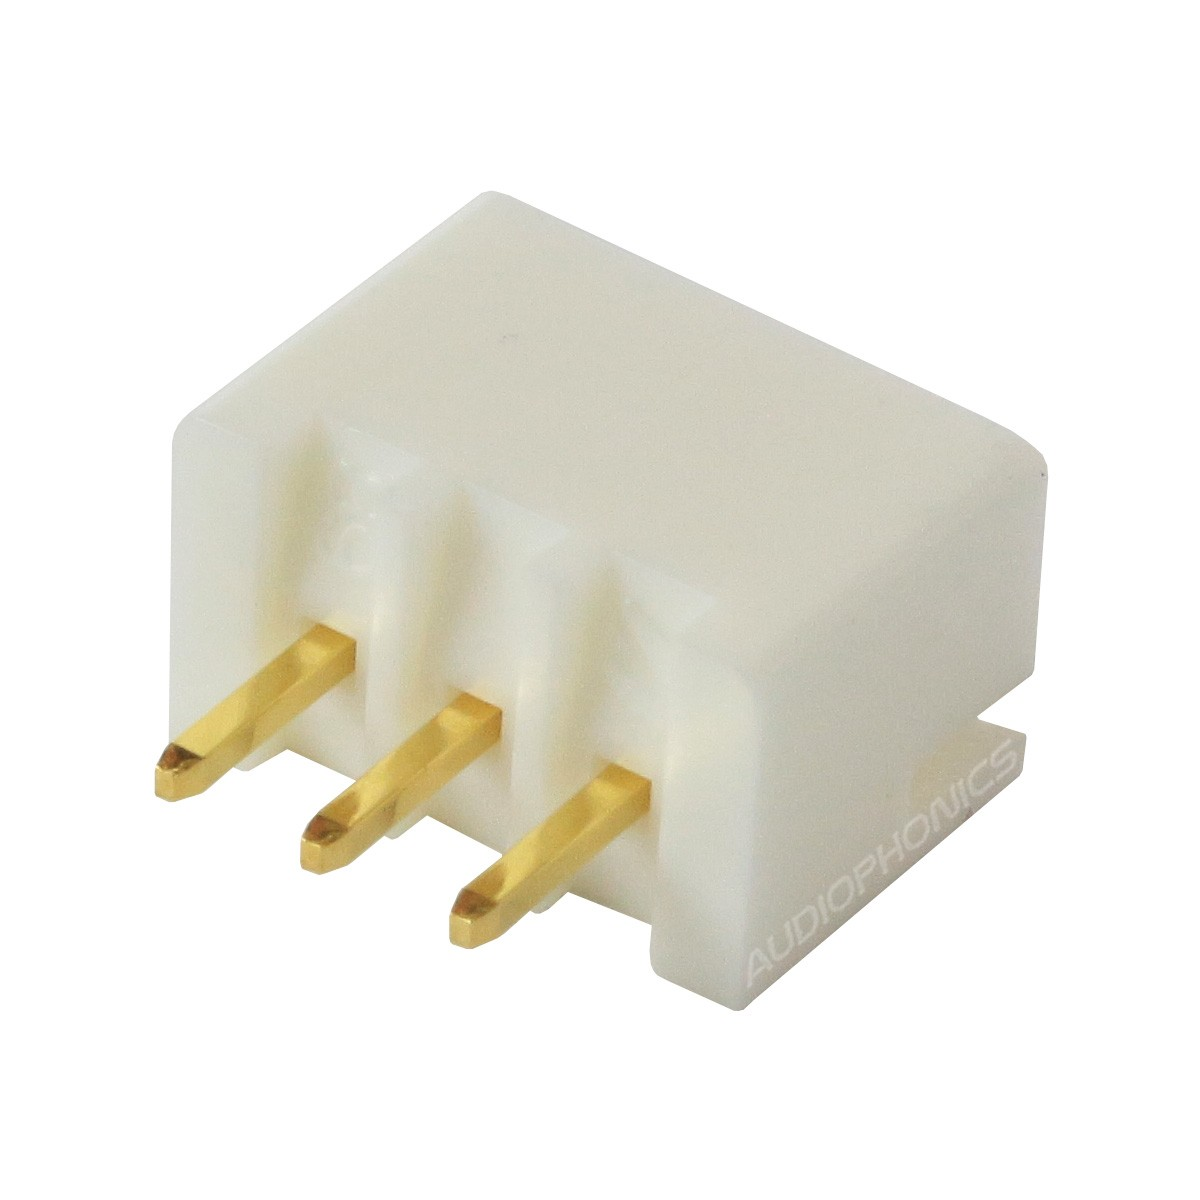 XH 2.54mm Male Socket 3 Channels Gold-Plated White (Unit)